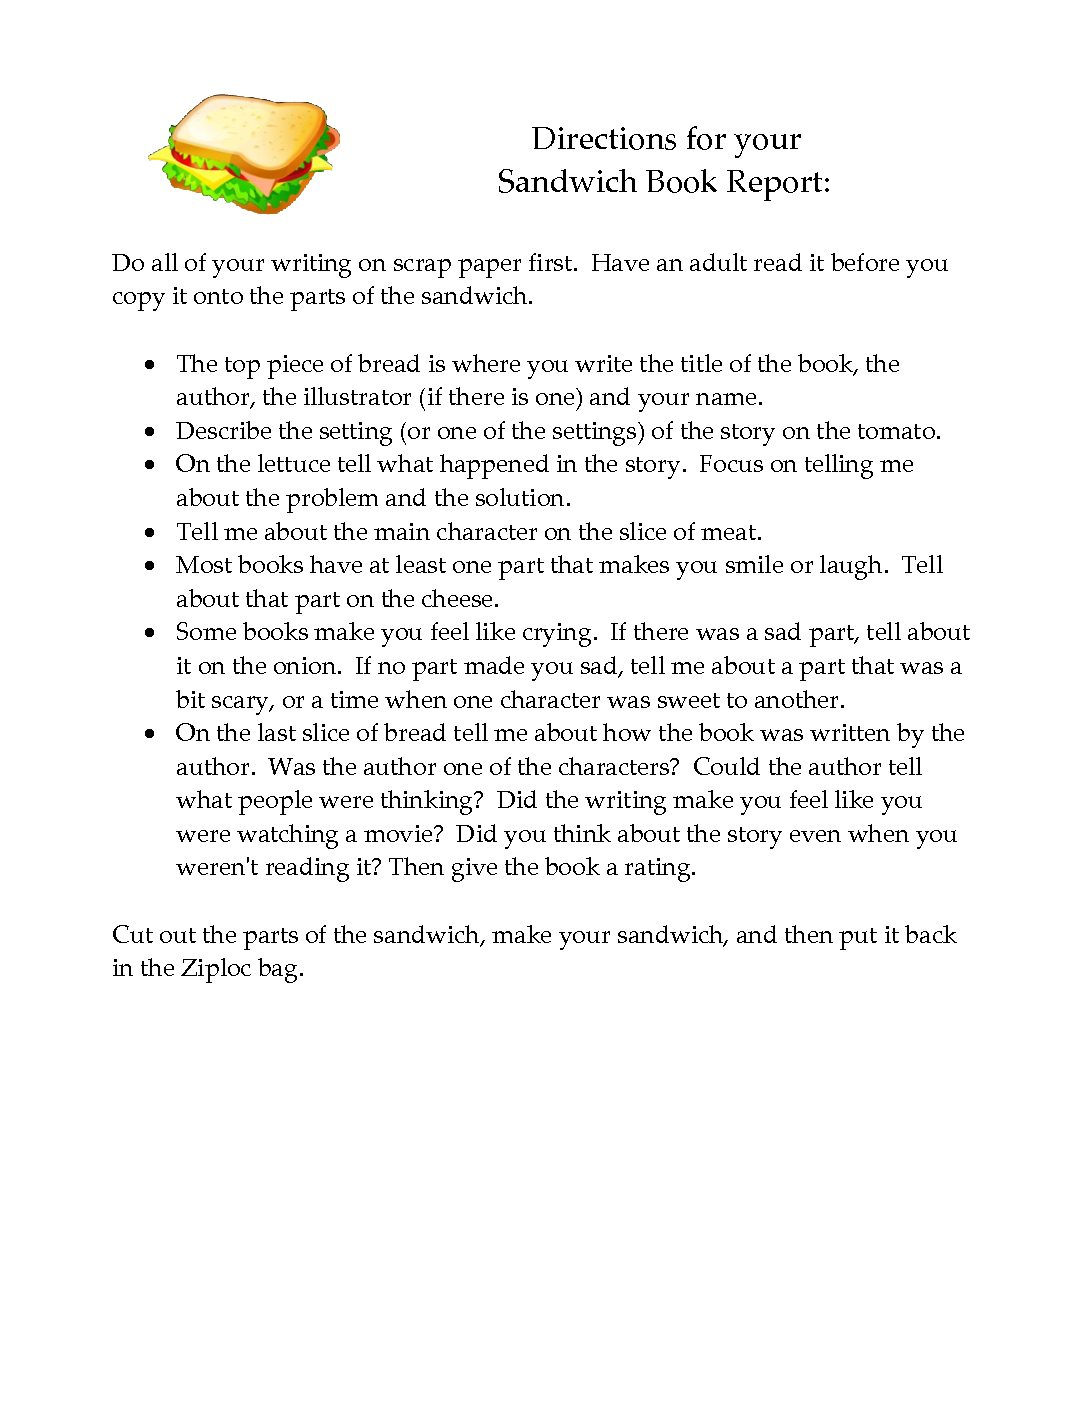 Sandwich Book Report Directions